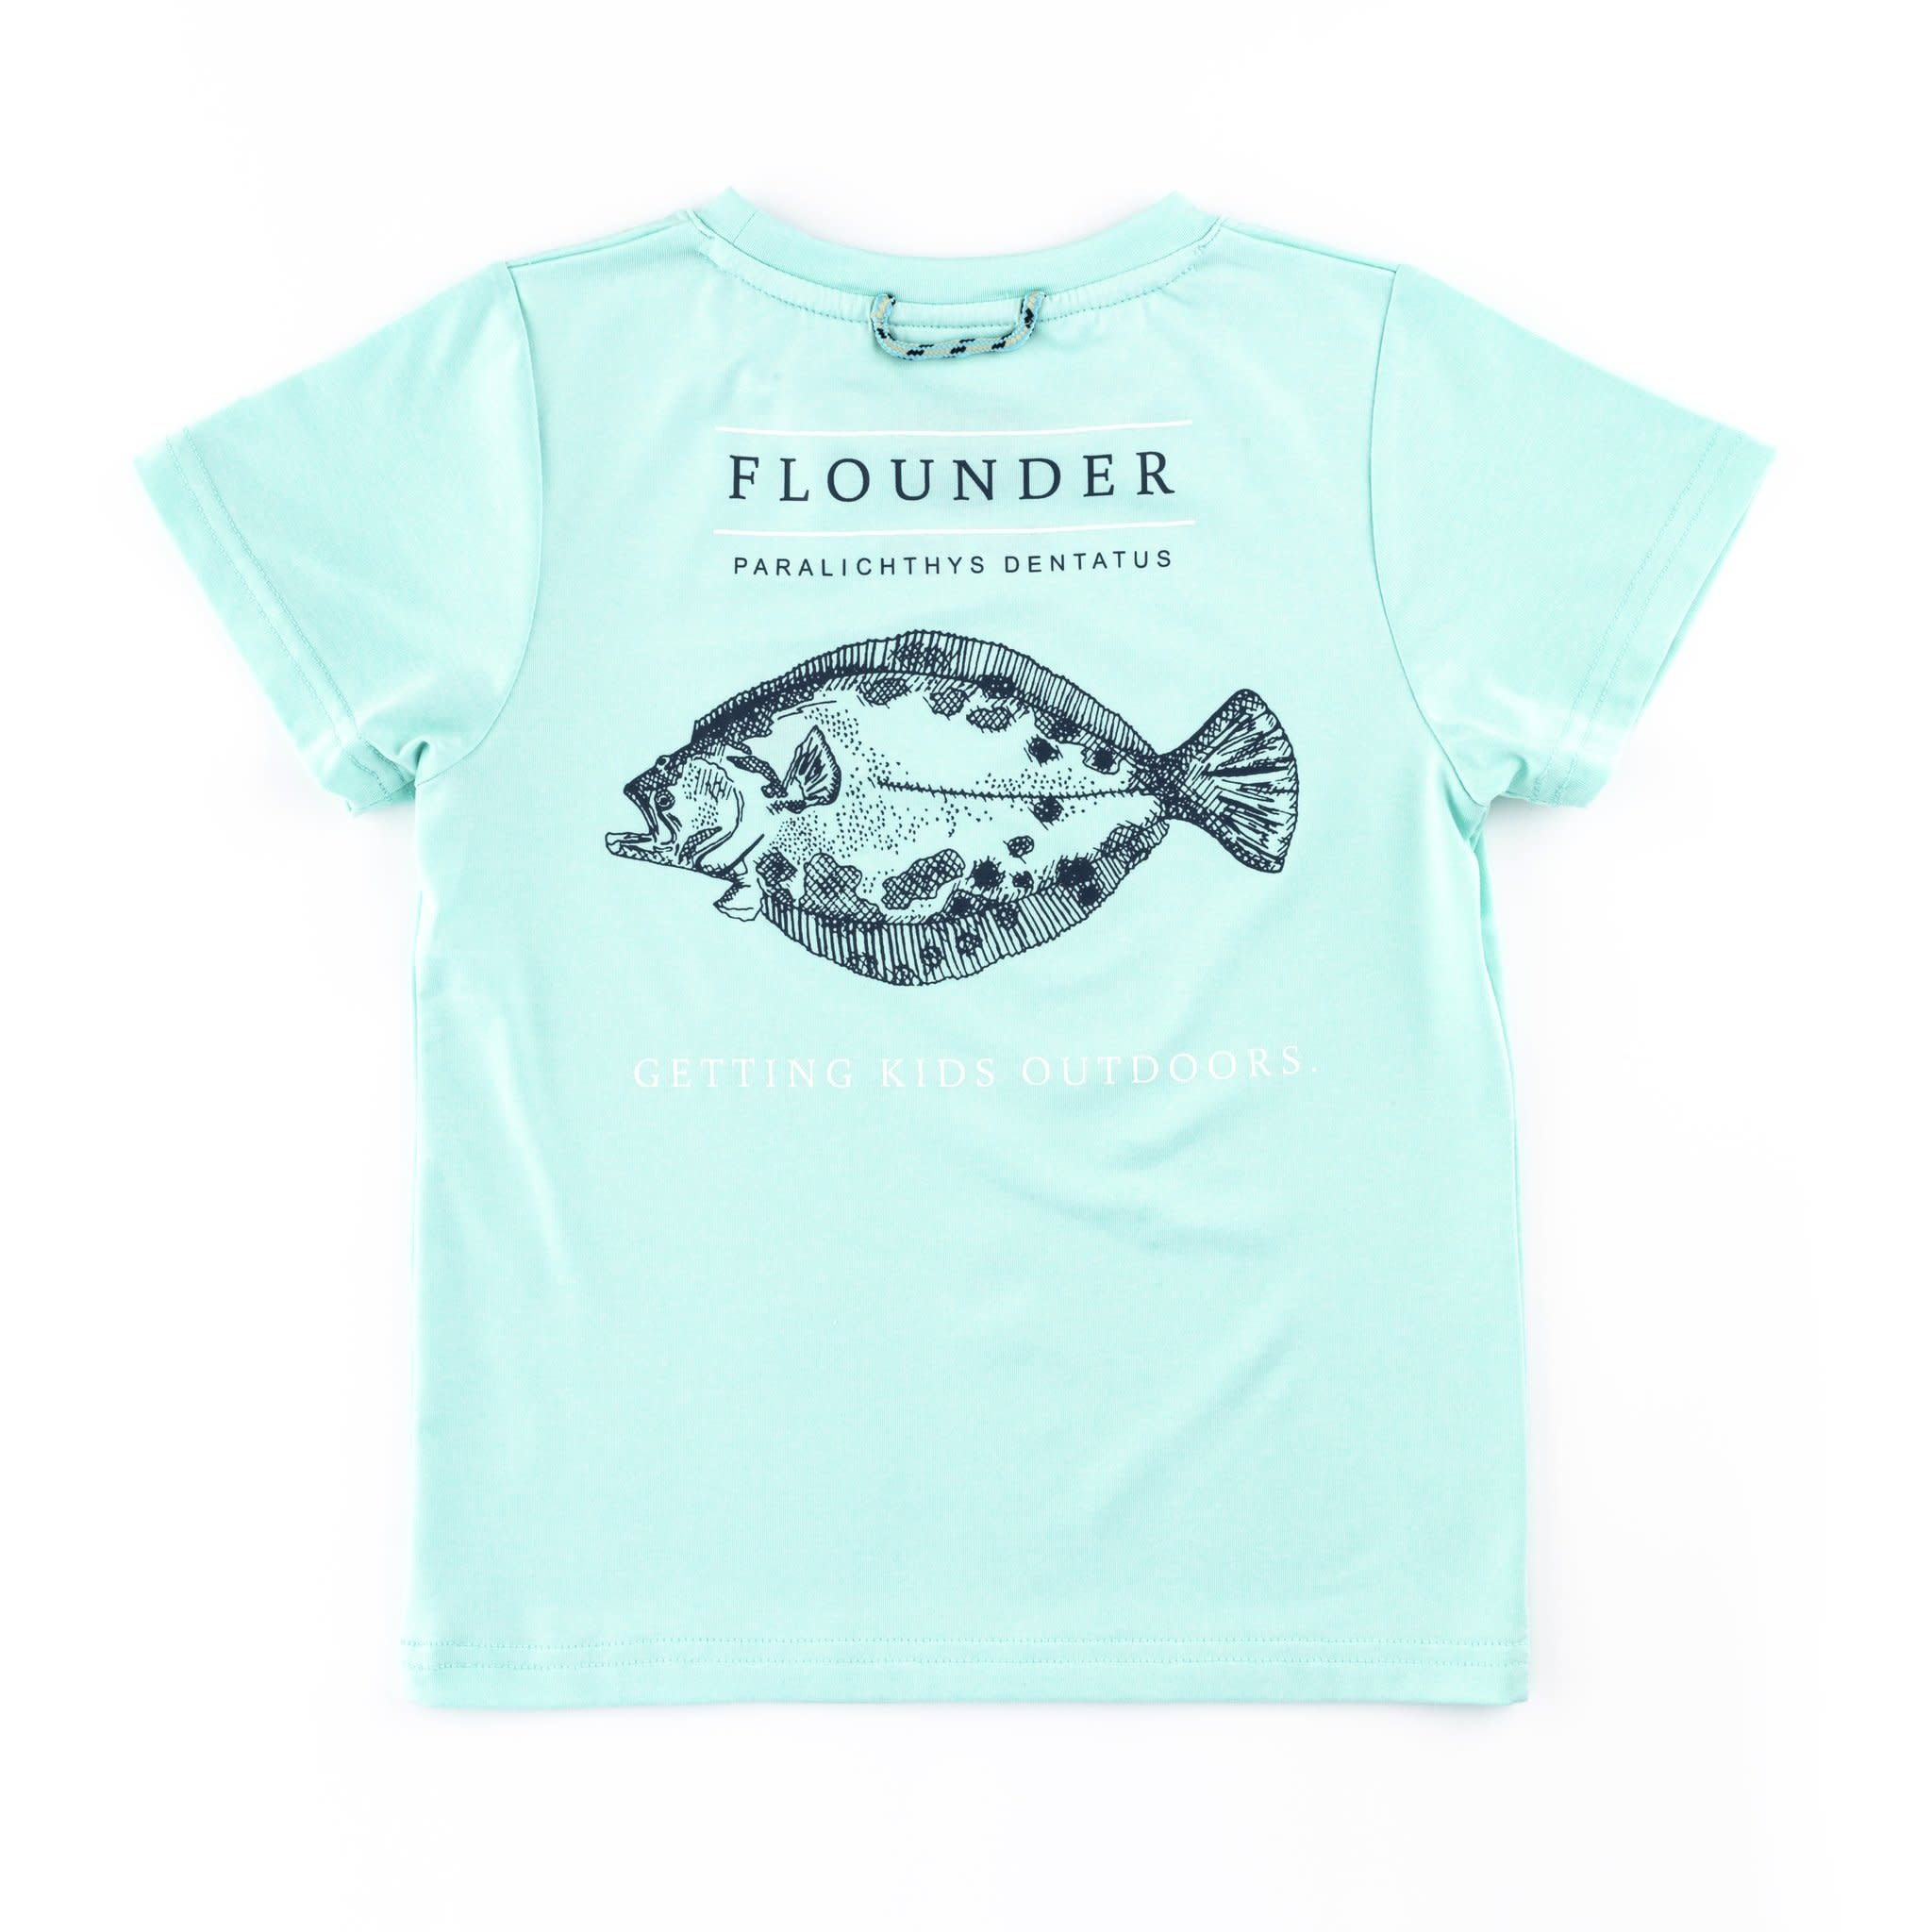 b2cee3128 Prodoh Flounder Pounder Performance Tee - Little Options